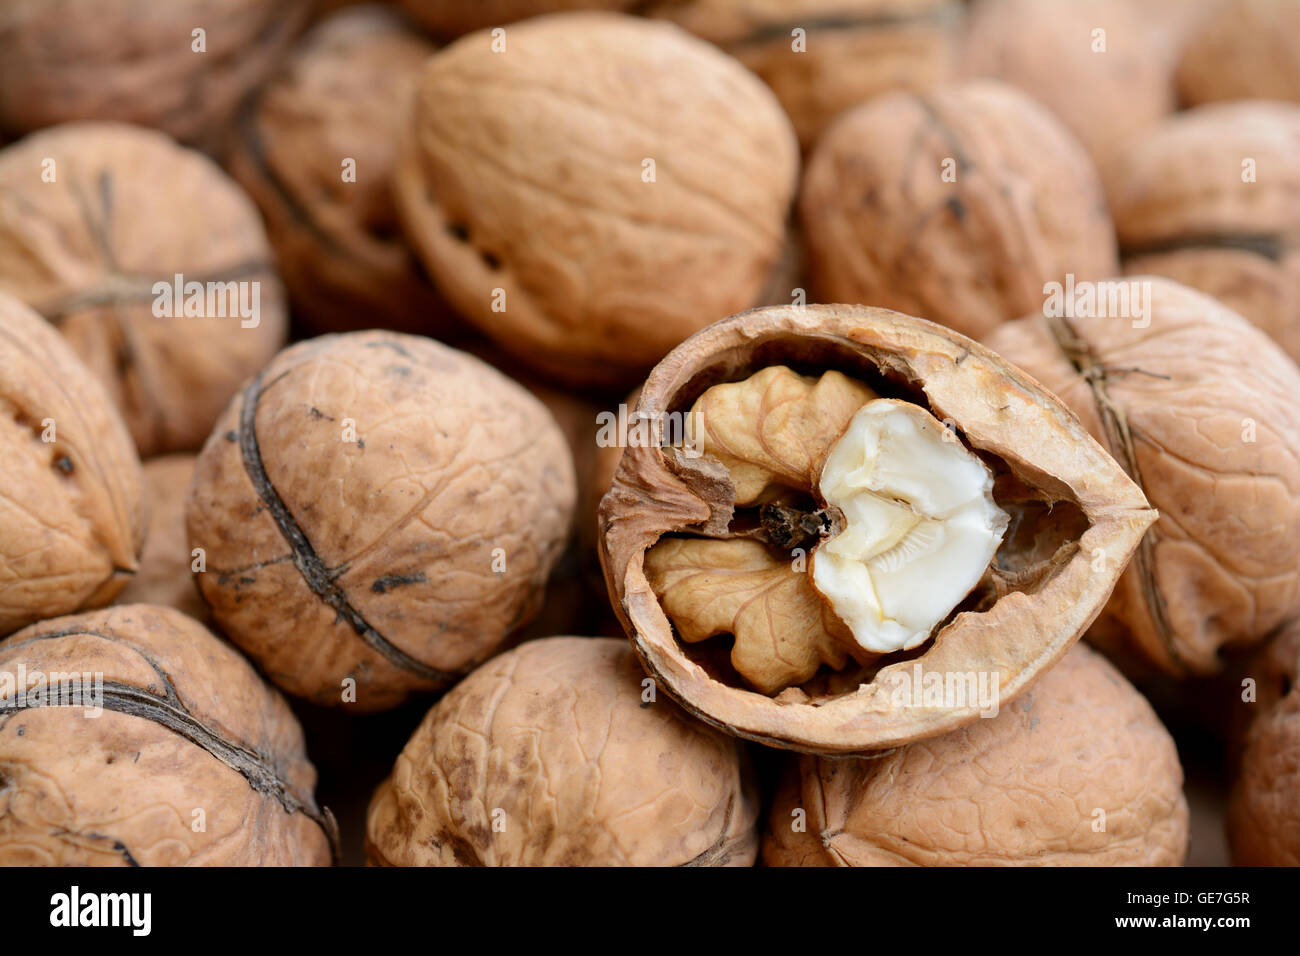 Brown cracked walnut closeup. Shallow depth of field. - Stock Image